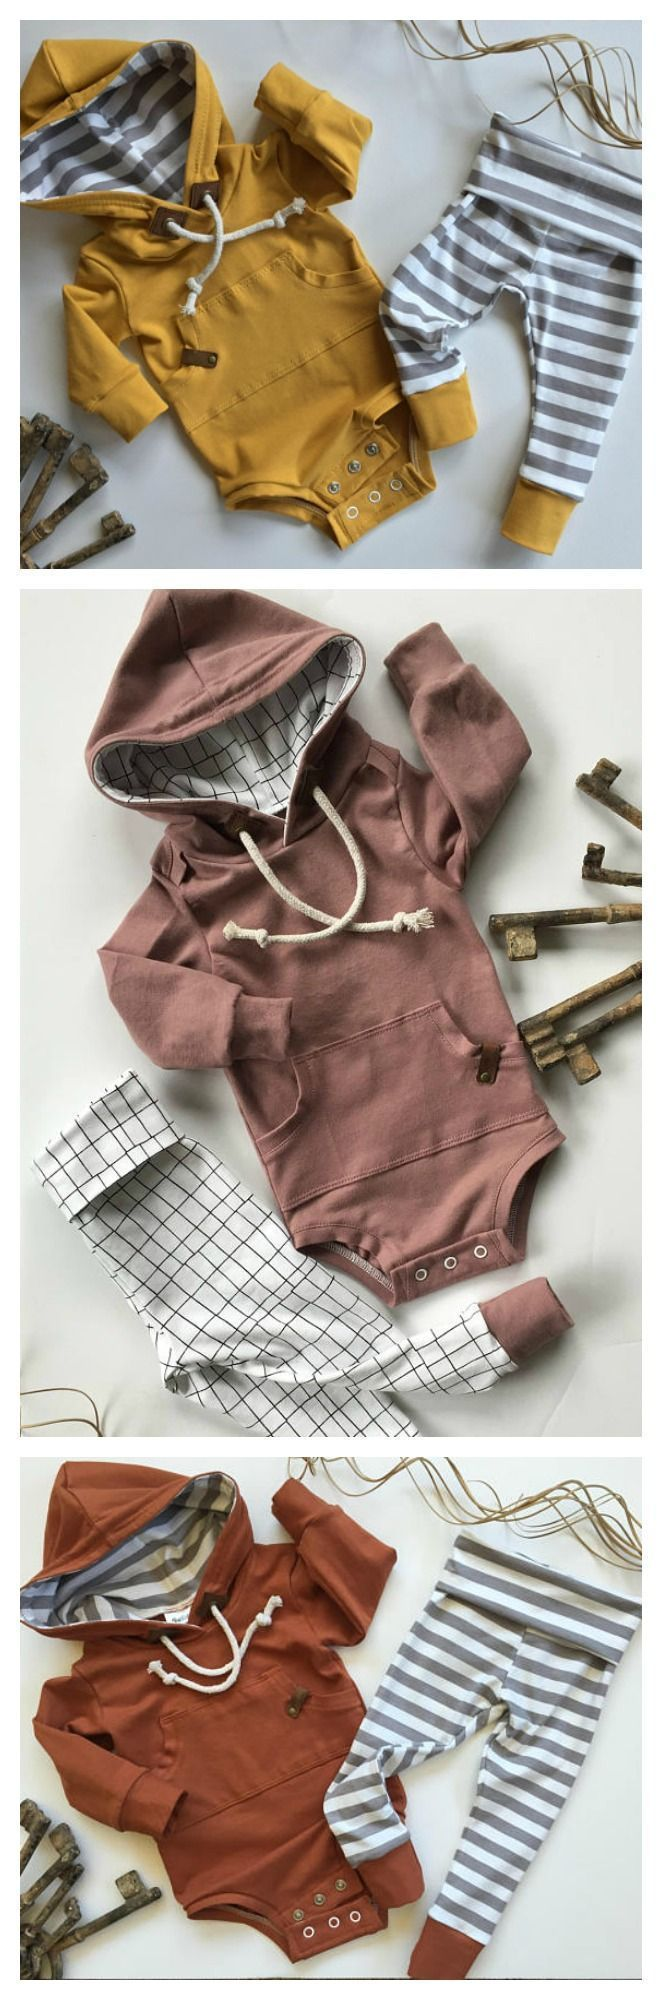 Baby romper, baby one piece, baby boy rompers, baby girl romper, modern baby clothing, baby gift ideas, gender neutral baby clothing https://presentbaby.com #babyfashionboy